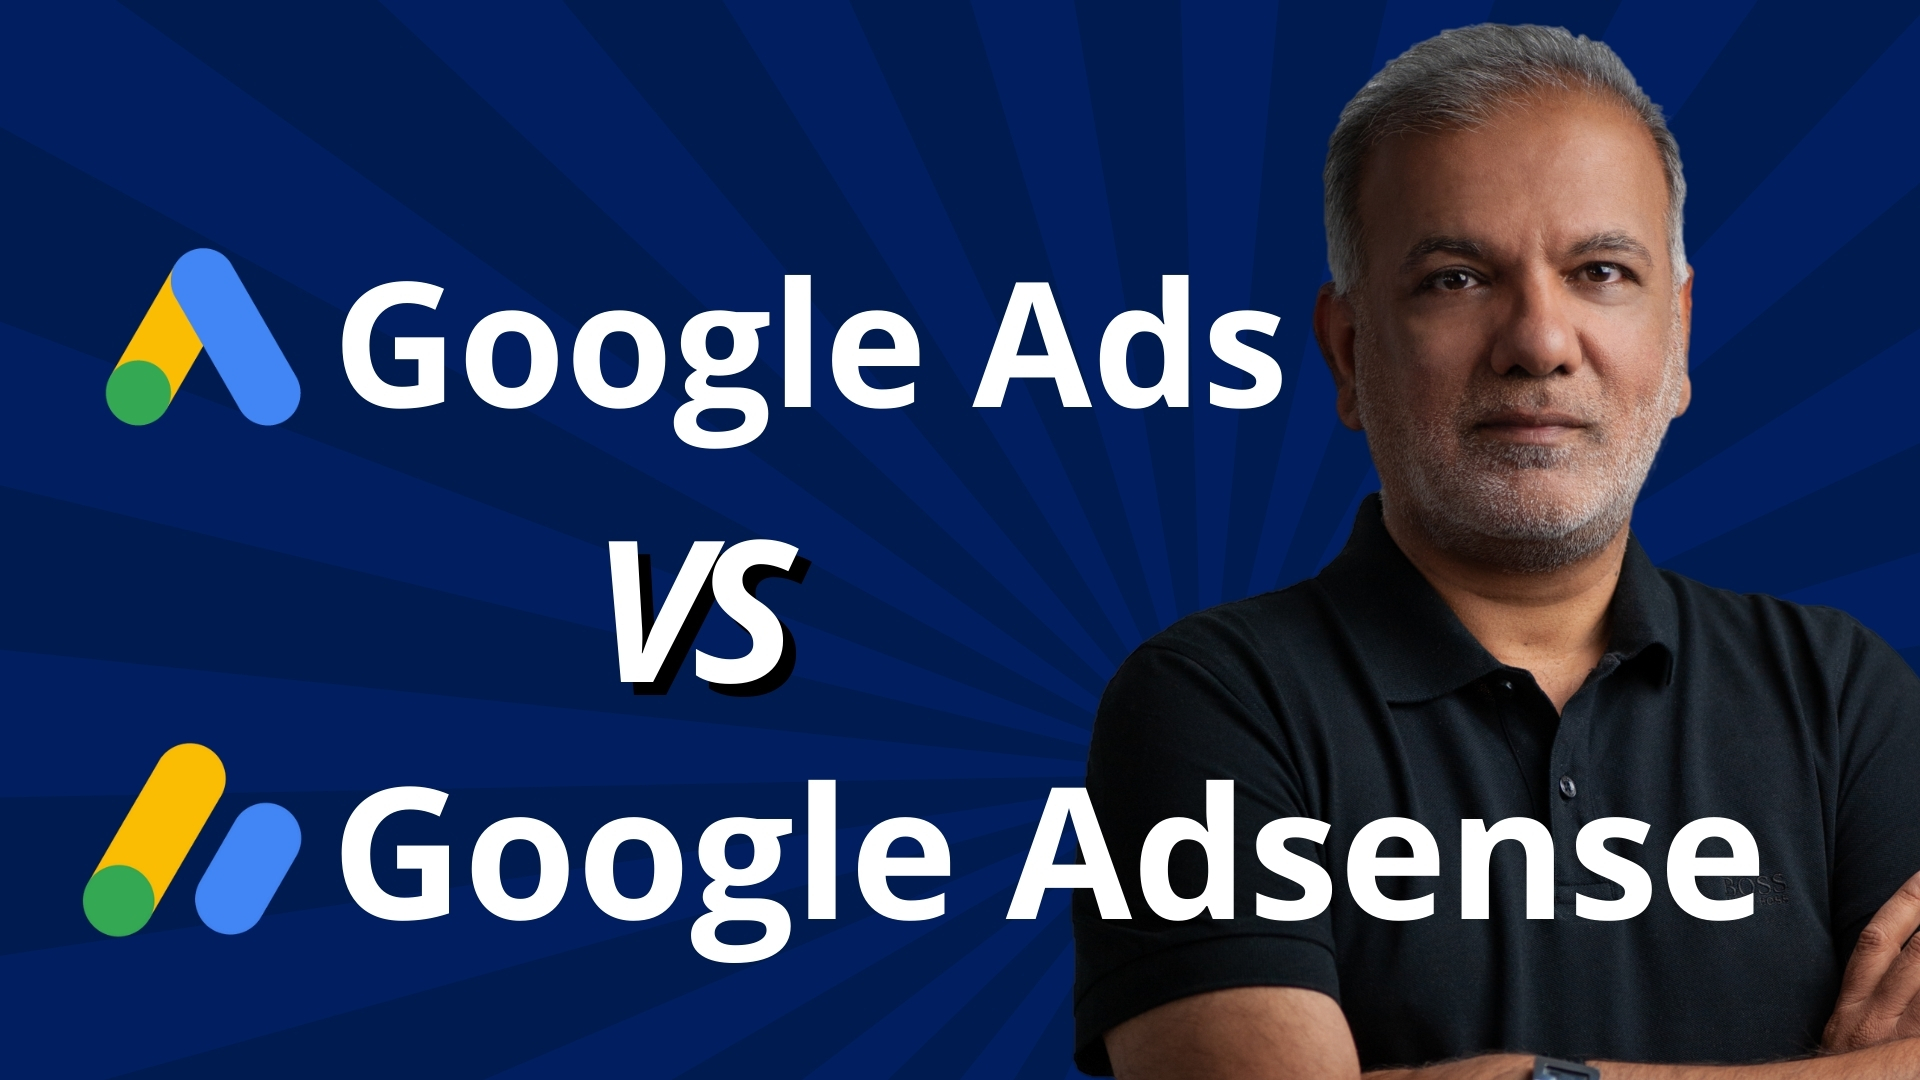 What Is The Difference Between Google AdSense And Google Ads?